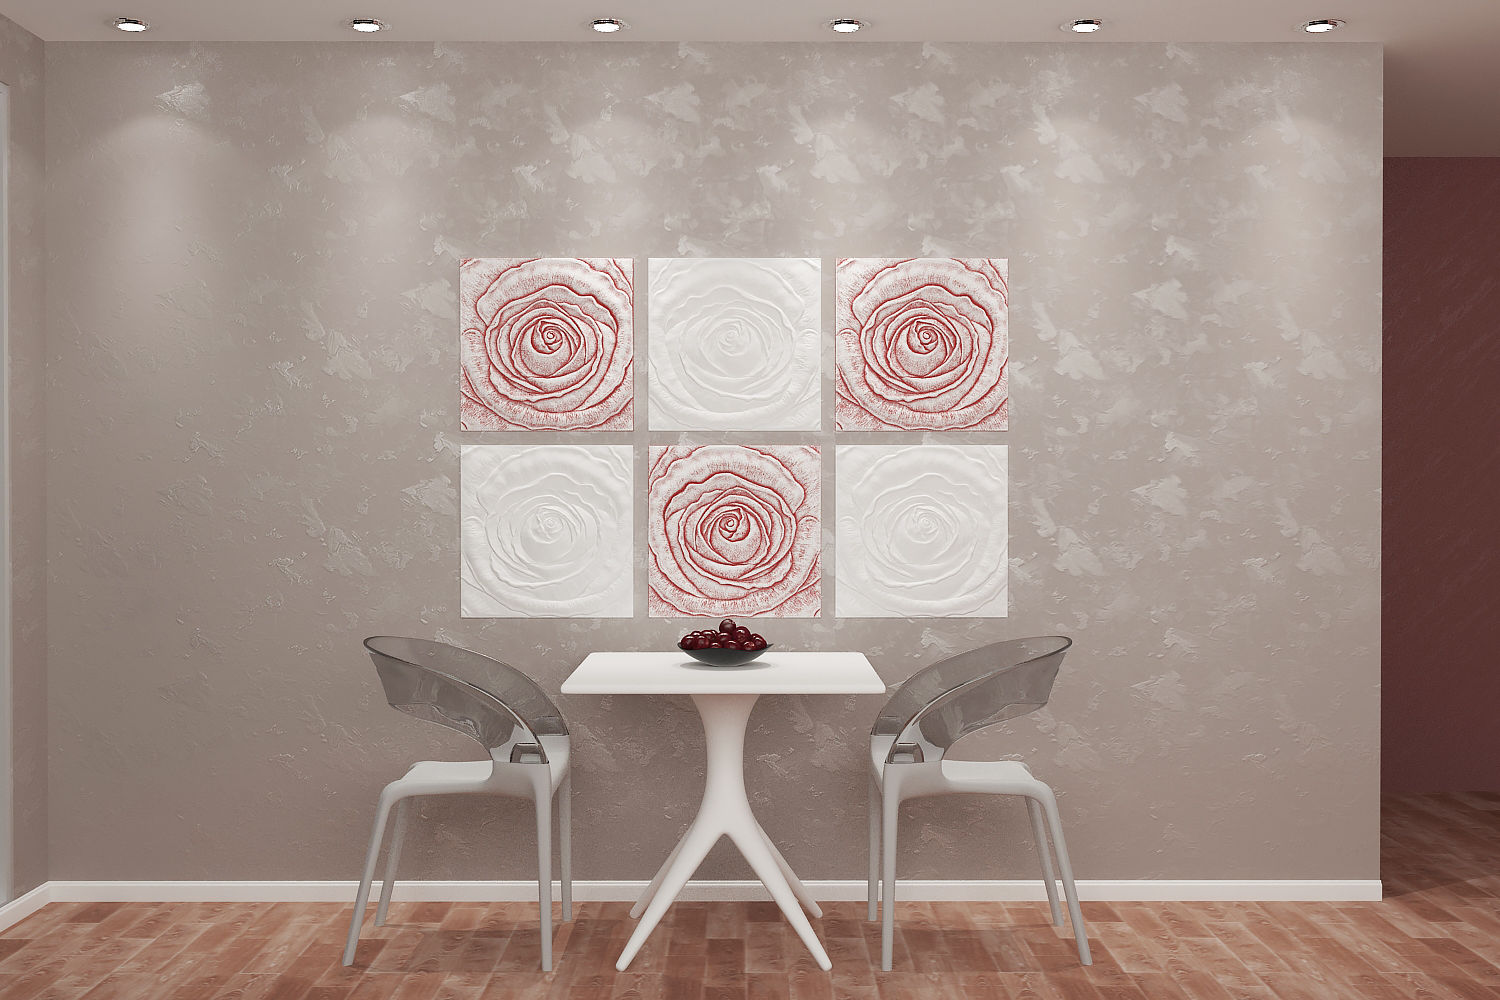 *rose Flower* 3d Decorative Wall Panels 1 Pcs Abs Plastic Mold For Plaster And To Have A Long Life. Light Equipment & Tools